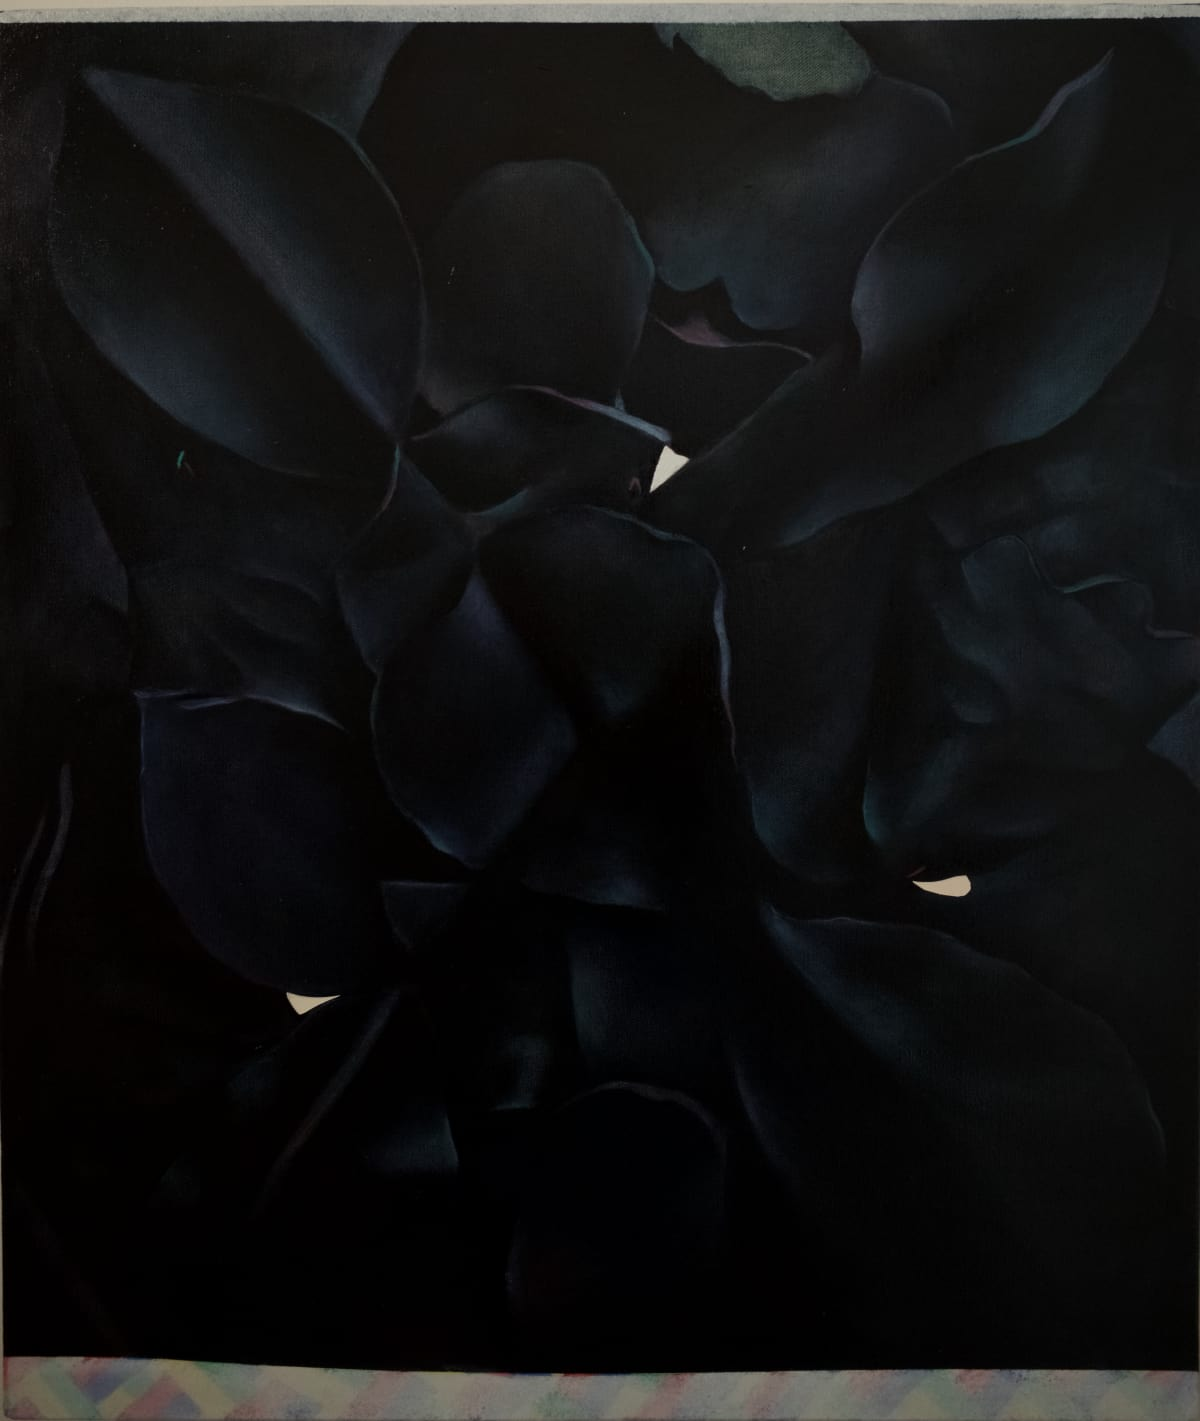 Louise Giovanelli, An Ex II, 2018